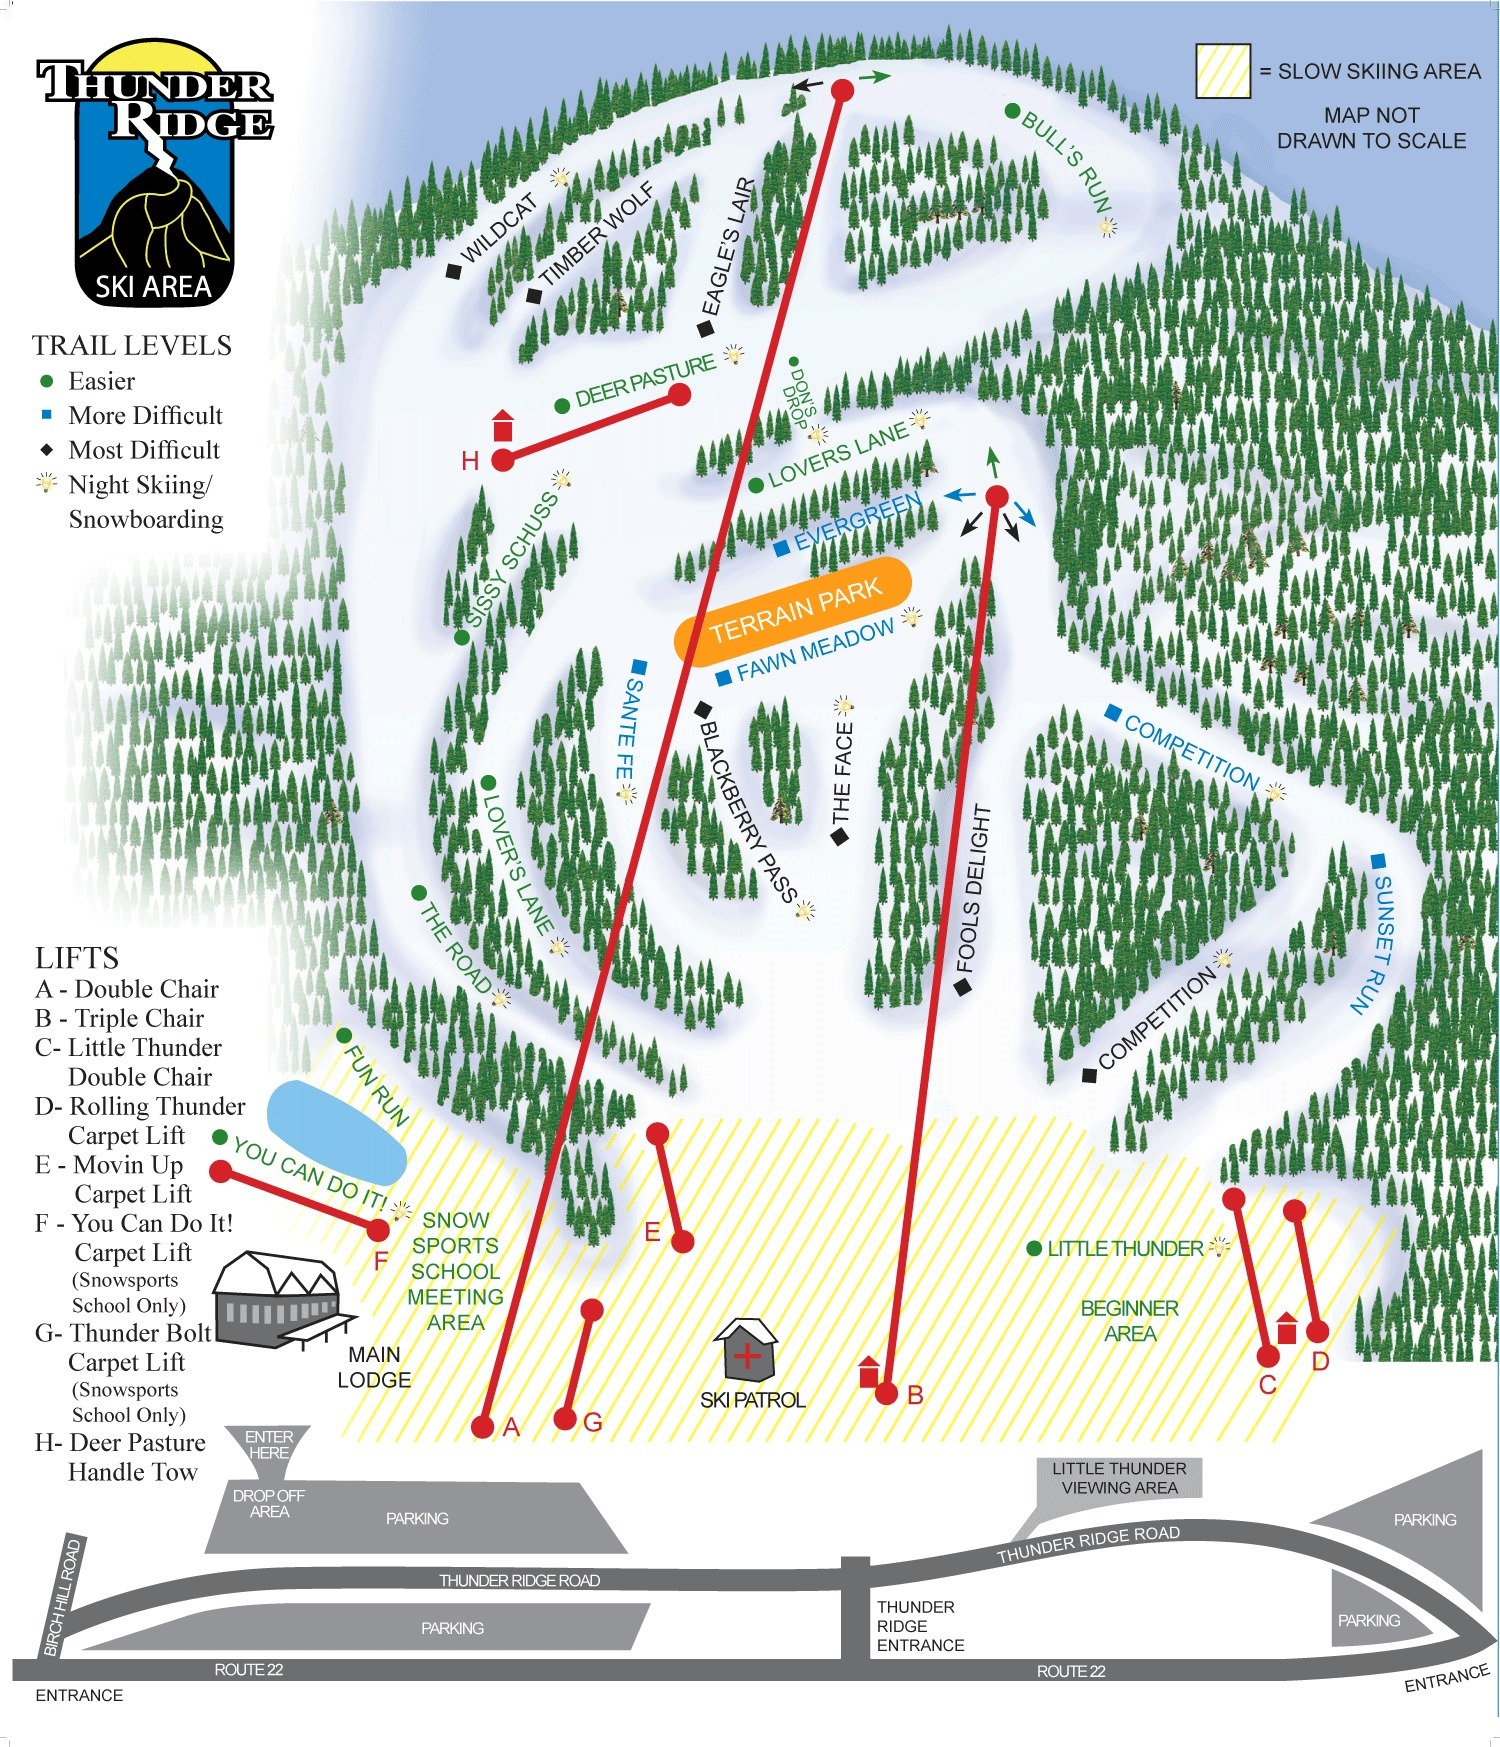 Thunder Ridge Piste / Trail Map